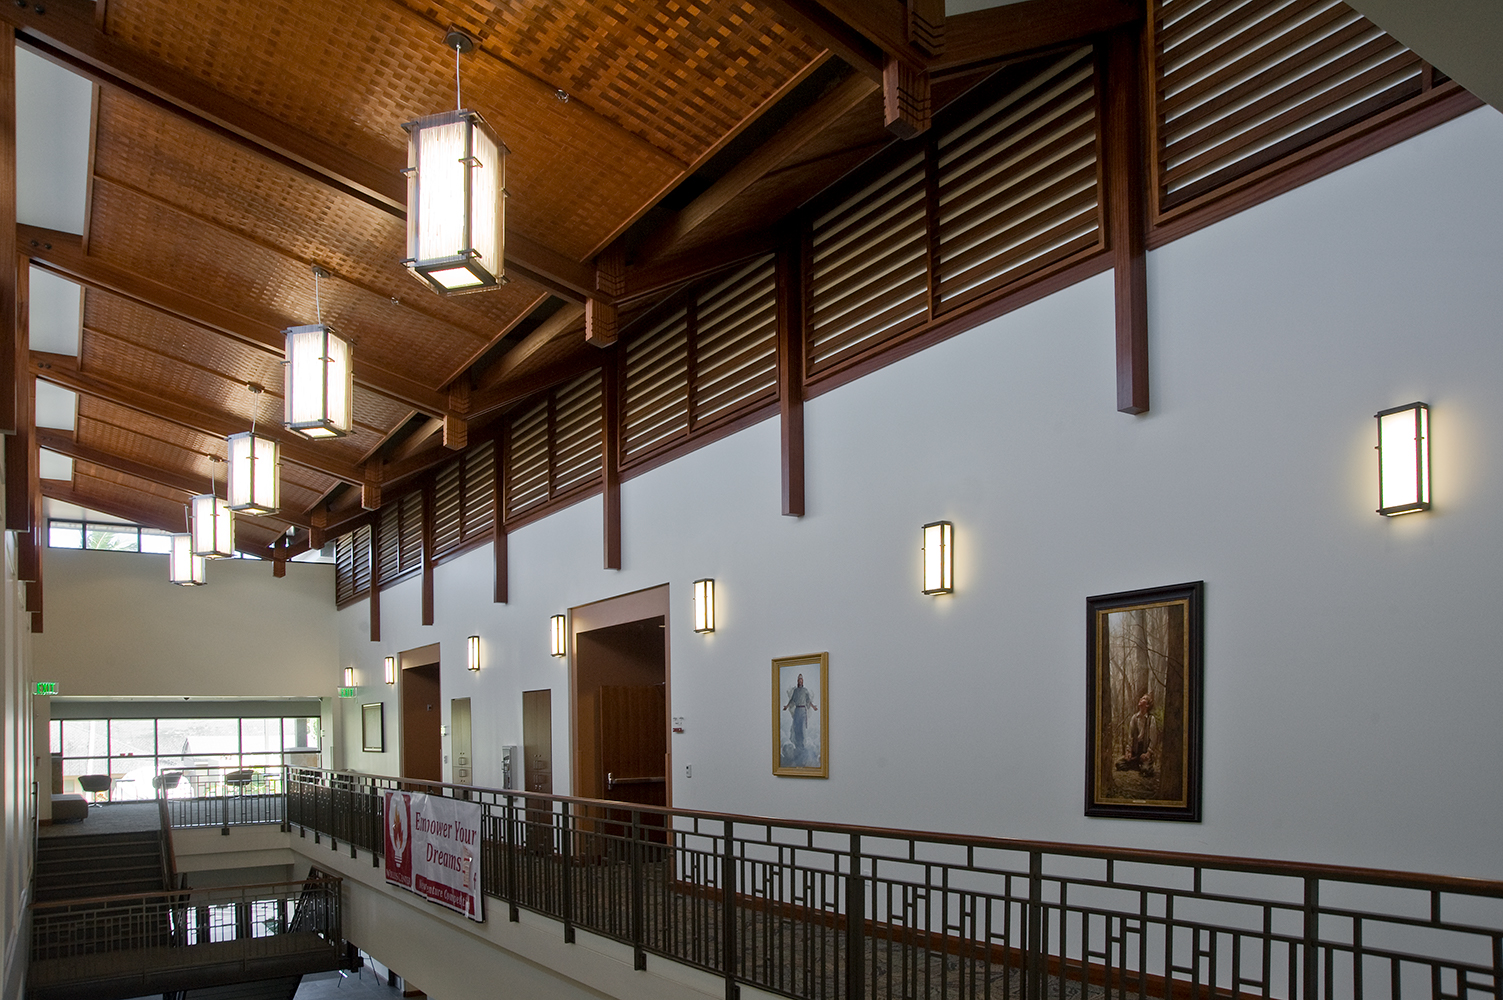 Distinguished custom light fixtures with heavy columns and frames in a university hallway.